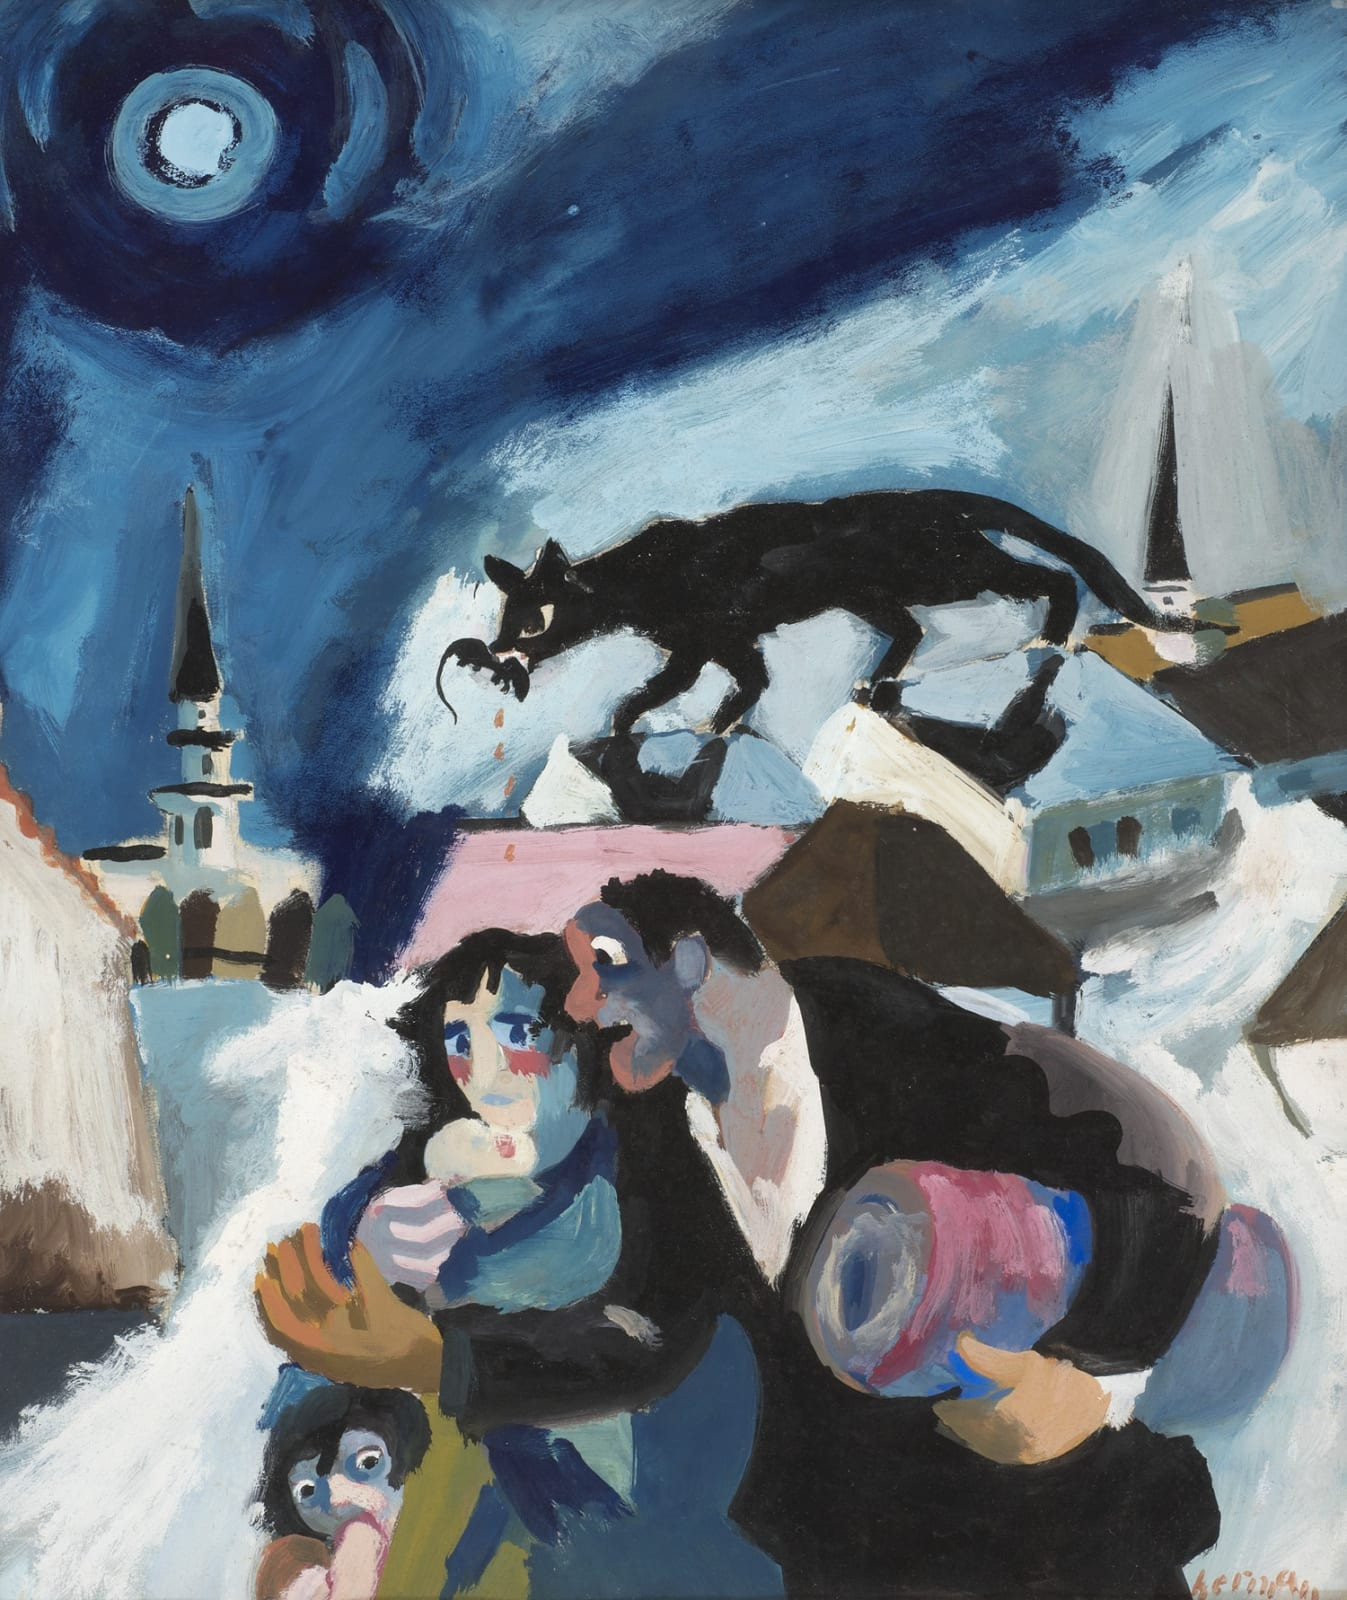 Refugees by Josef Herman (1911-2000), c.1941. Gouache on paper.